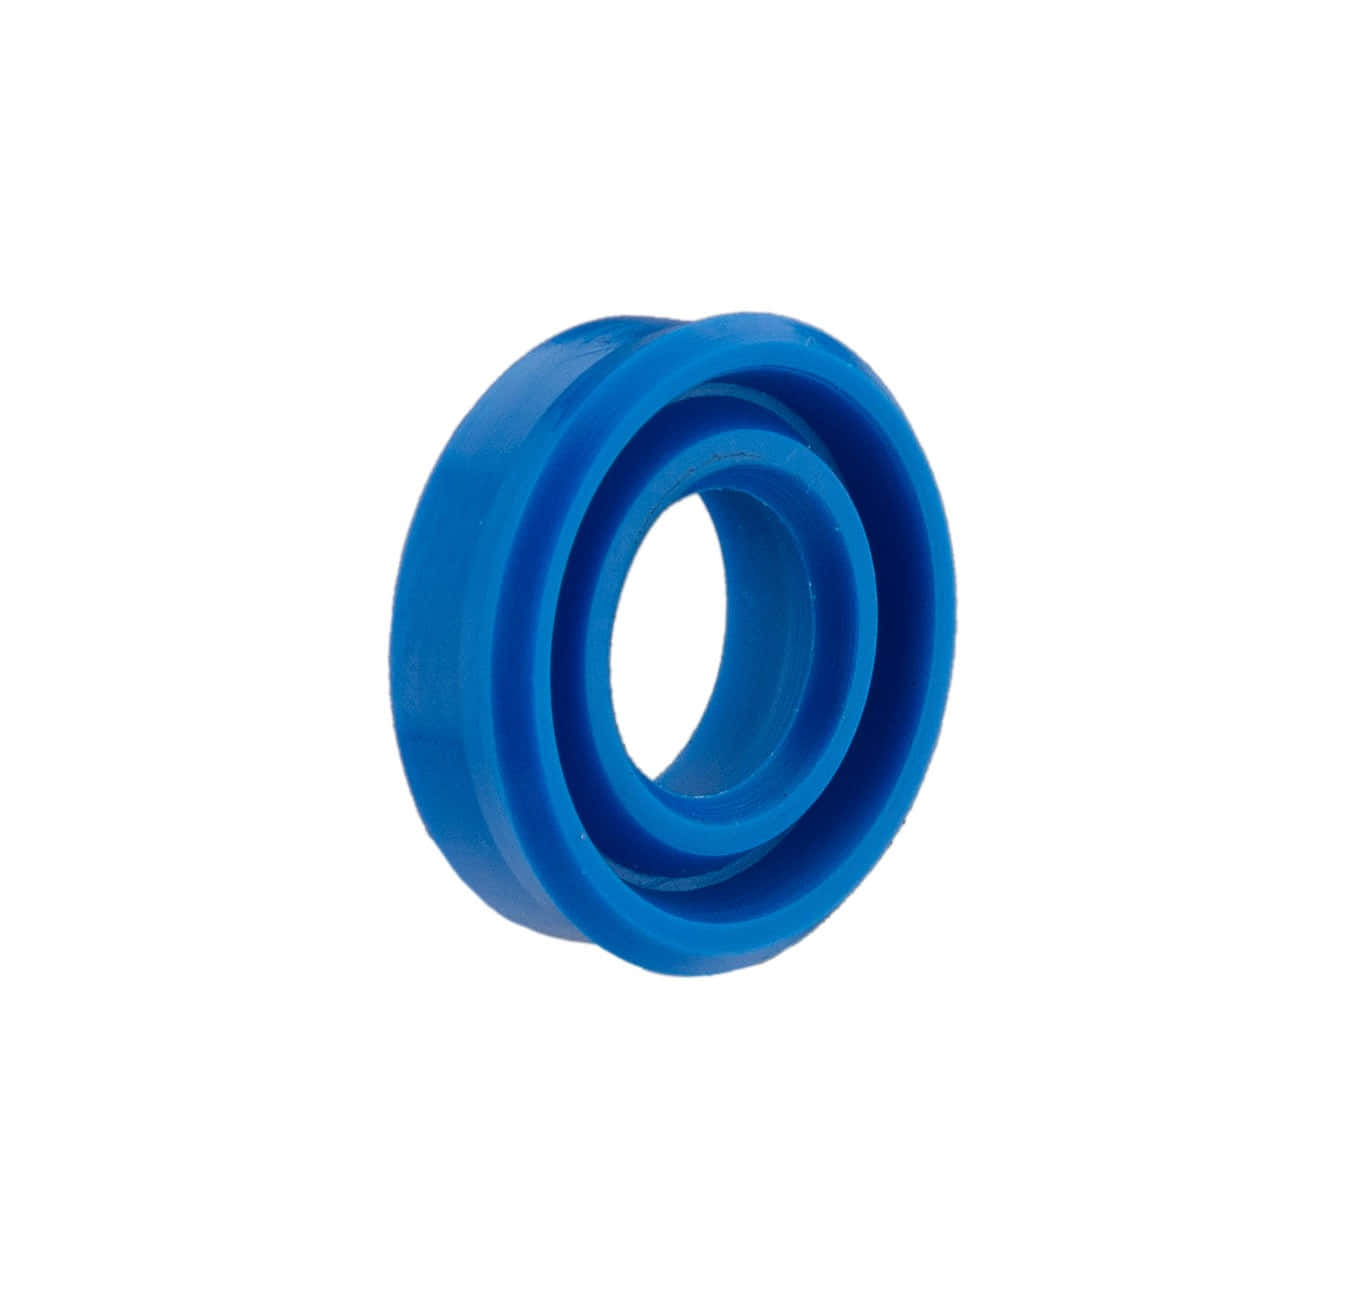 SP03023 E-RAZE Grenade Blue Lower Ring Replacement part - SP03023